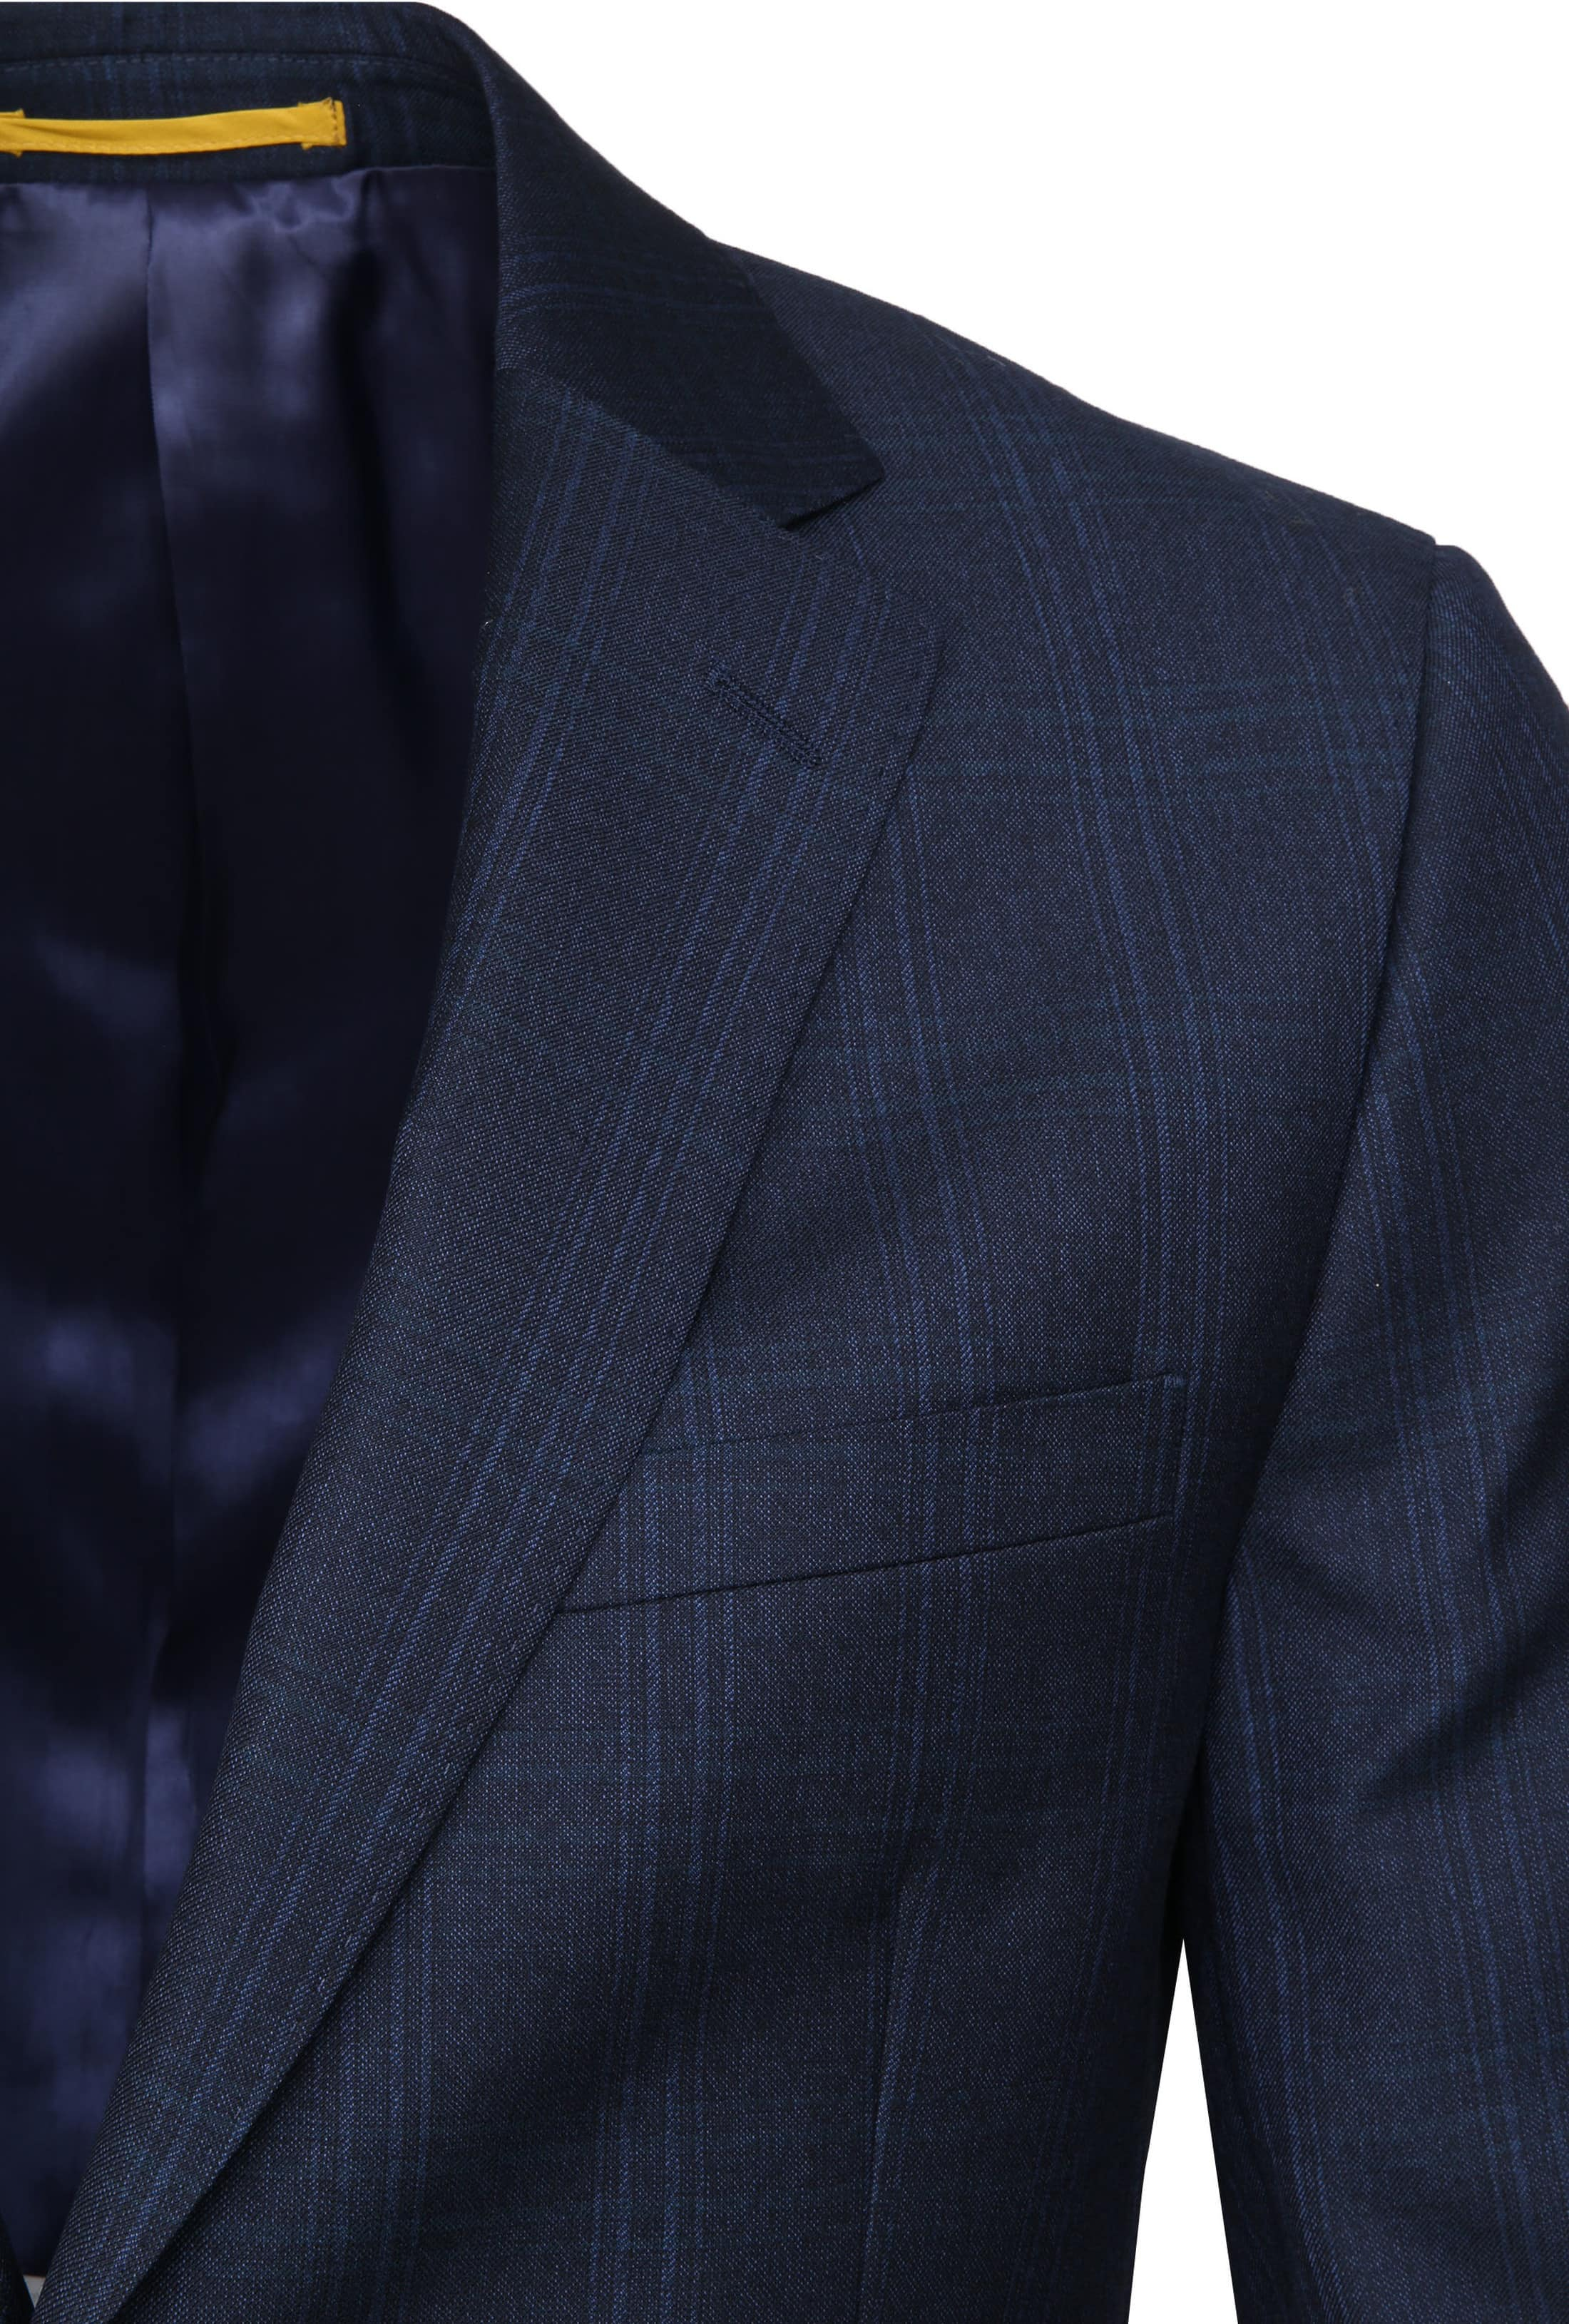 Suitable Suit Strato Navy Checks photo 3